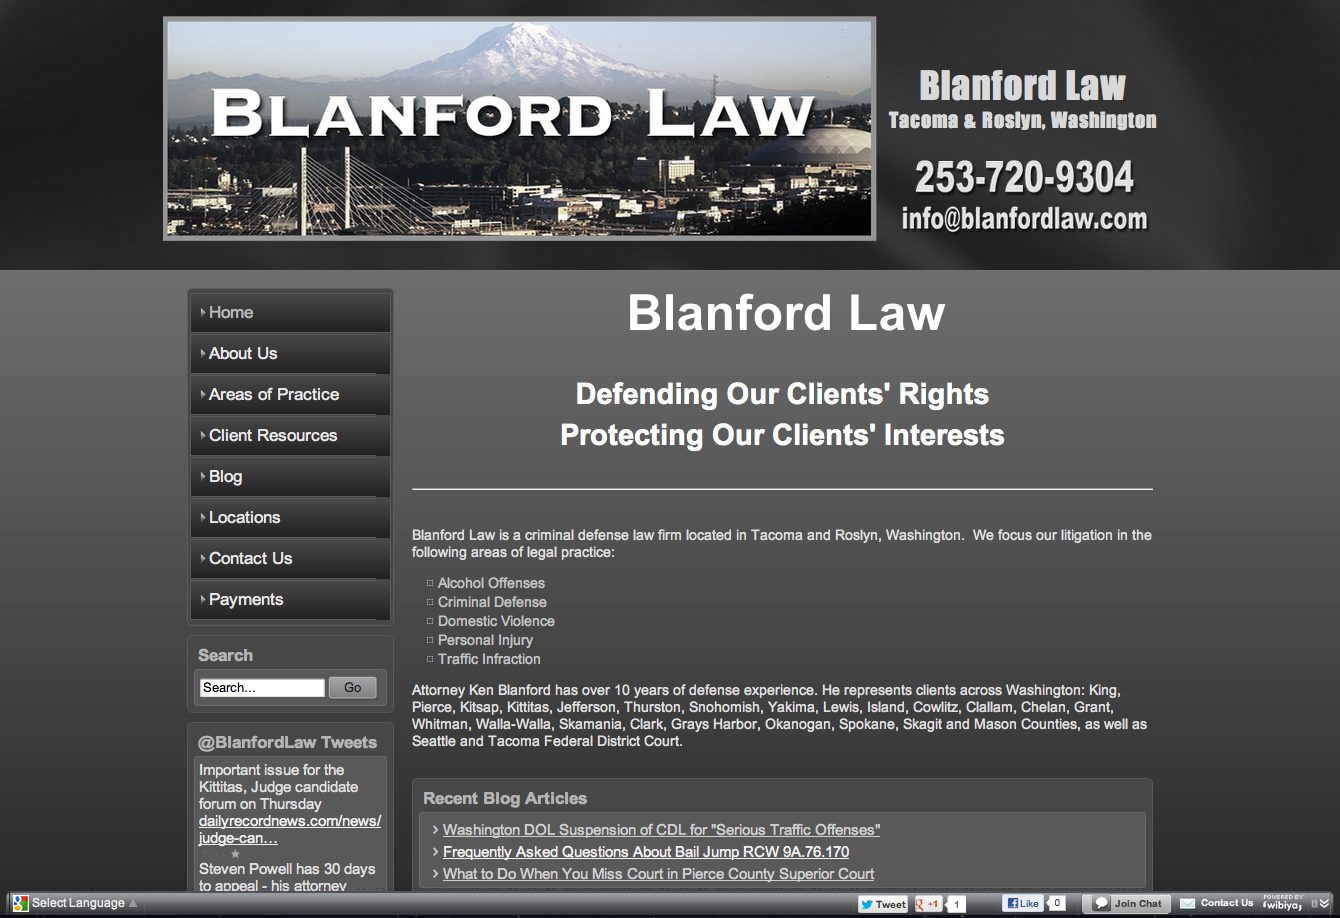 Blanford Law Www Blanfordlaw Com Personal Injury And Dui Attorney In Tacoma And Roslyn Wa This Was A Conversion And Rebuild Of Dui Attorney Joomla Roslyn